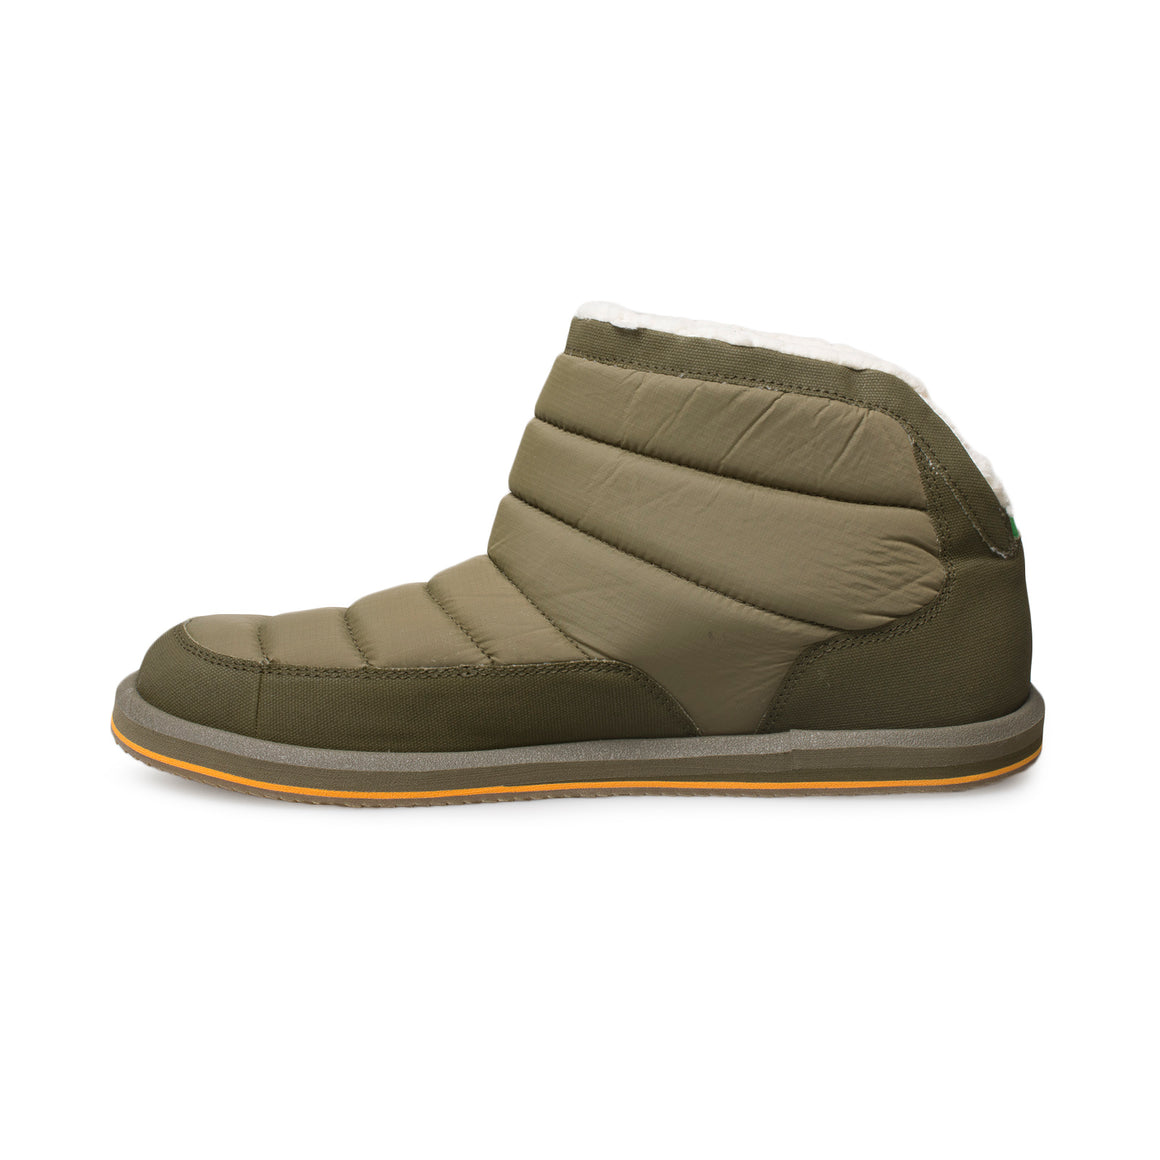 Sanuk Puff N Chill Dark Olive Shoes - Men's